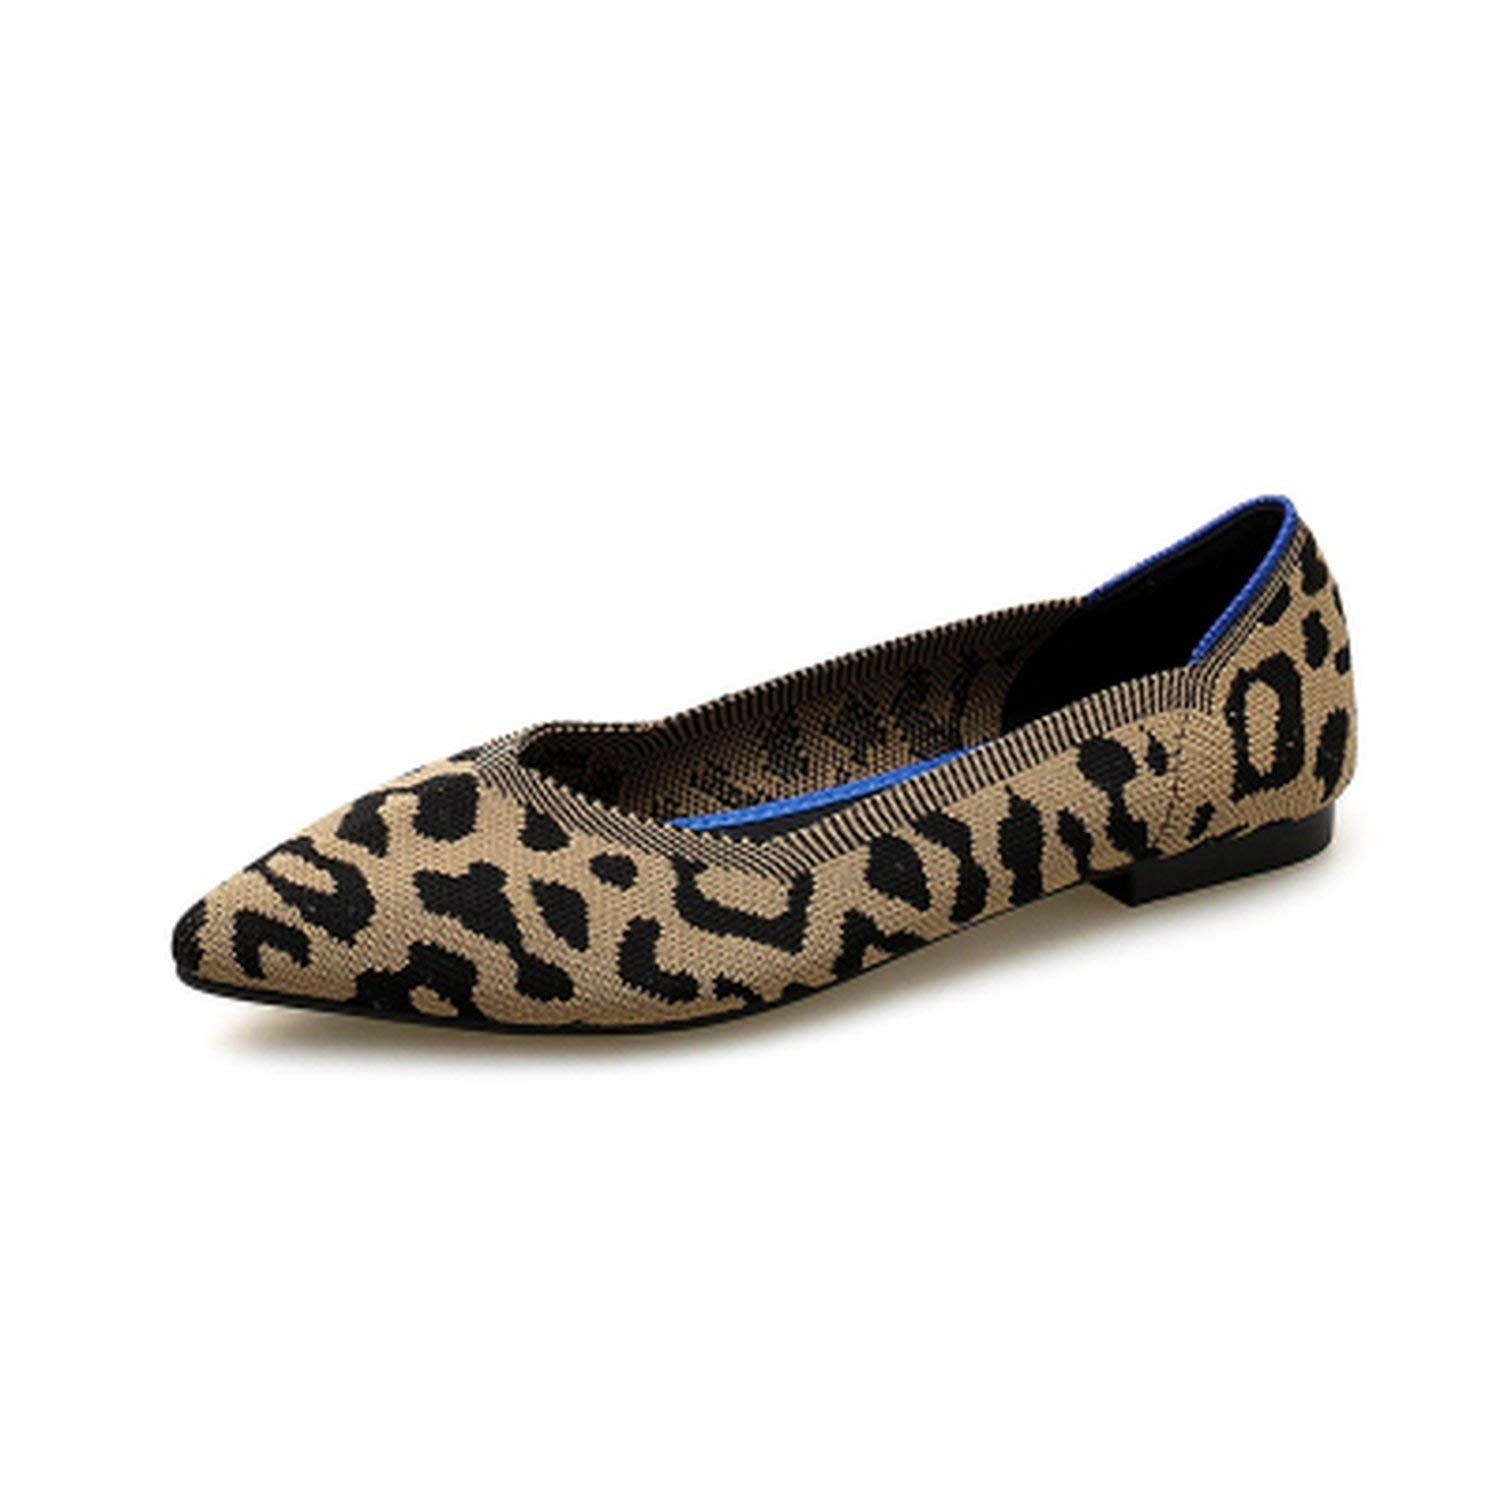 Chery-Story Womens Casual Shoes Breathable Soft Bottom Leopard-Print Knit Flat Shoes Pointed Shallow-Mouth Flats Size 35~40,Pink,6